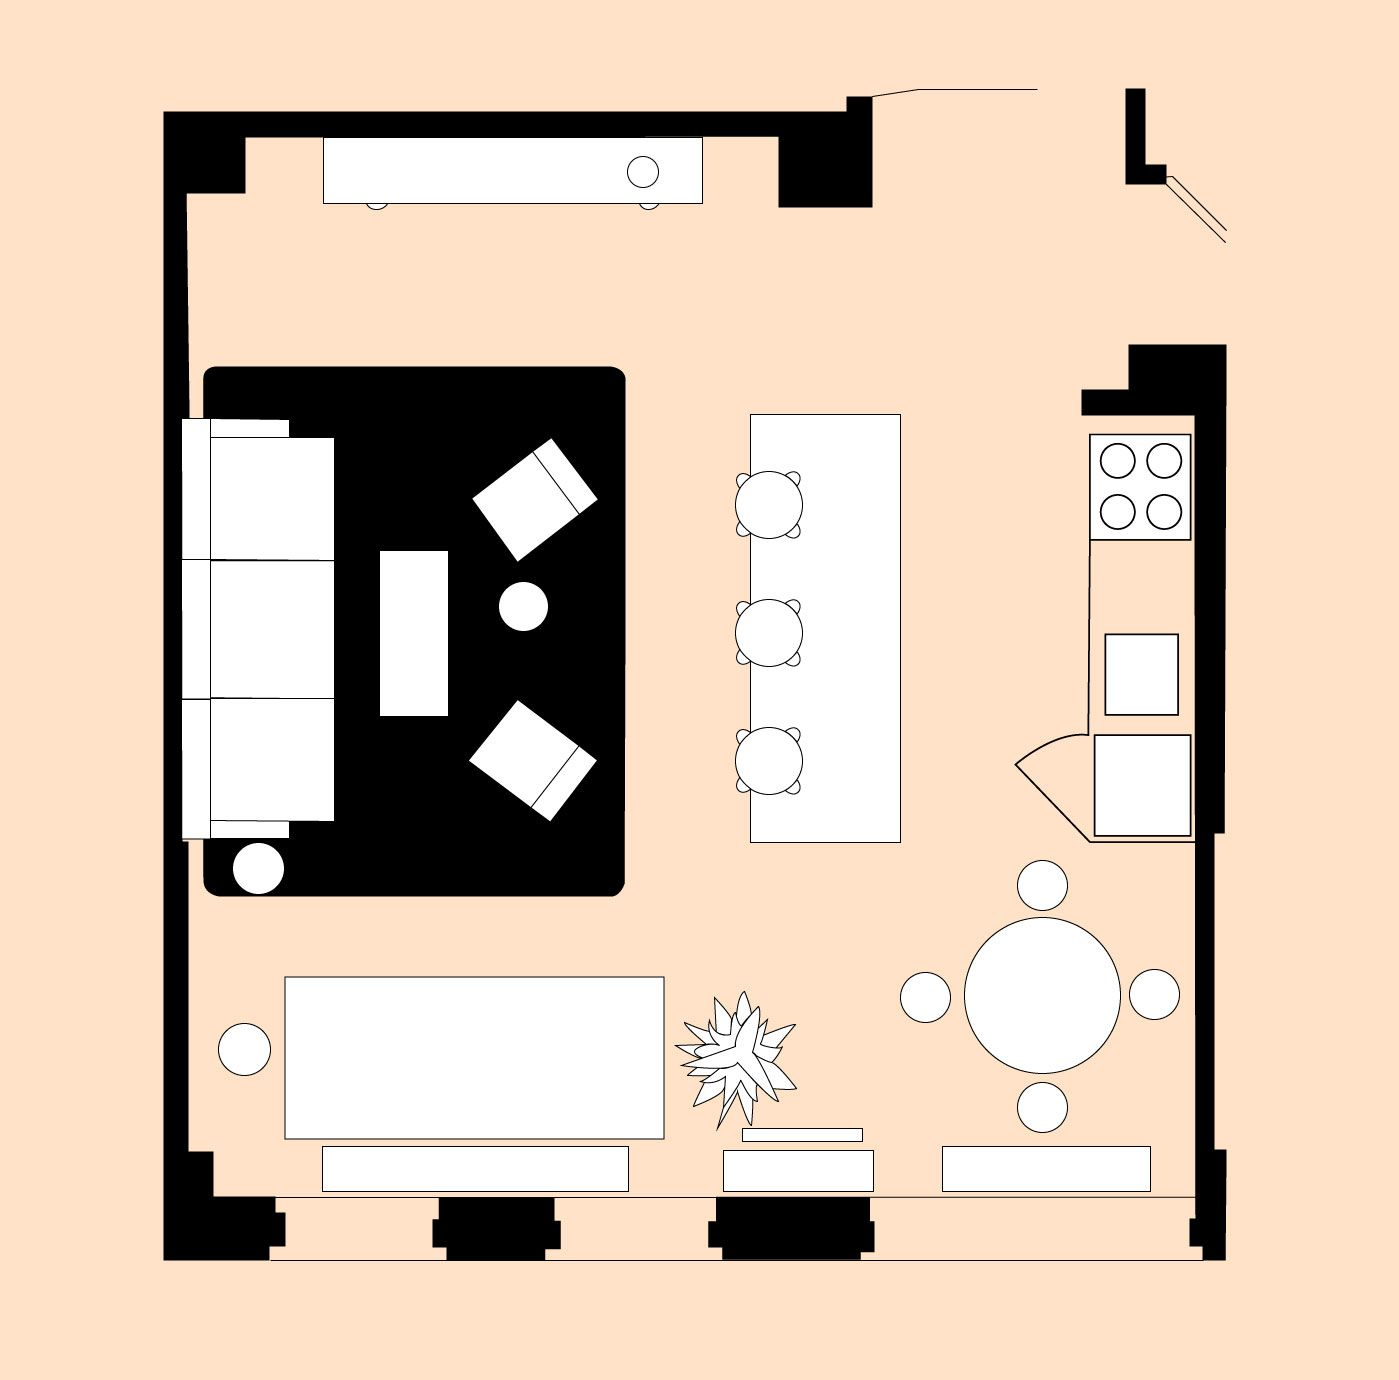 4 Living Room Layout For A Small Open Plan Space With Images